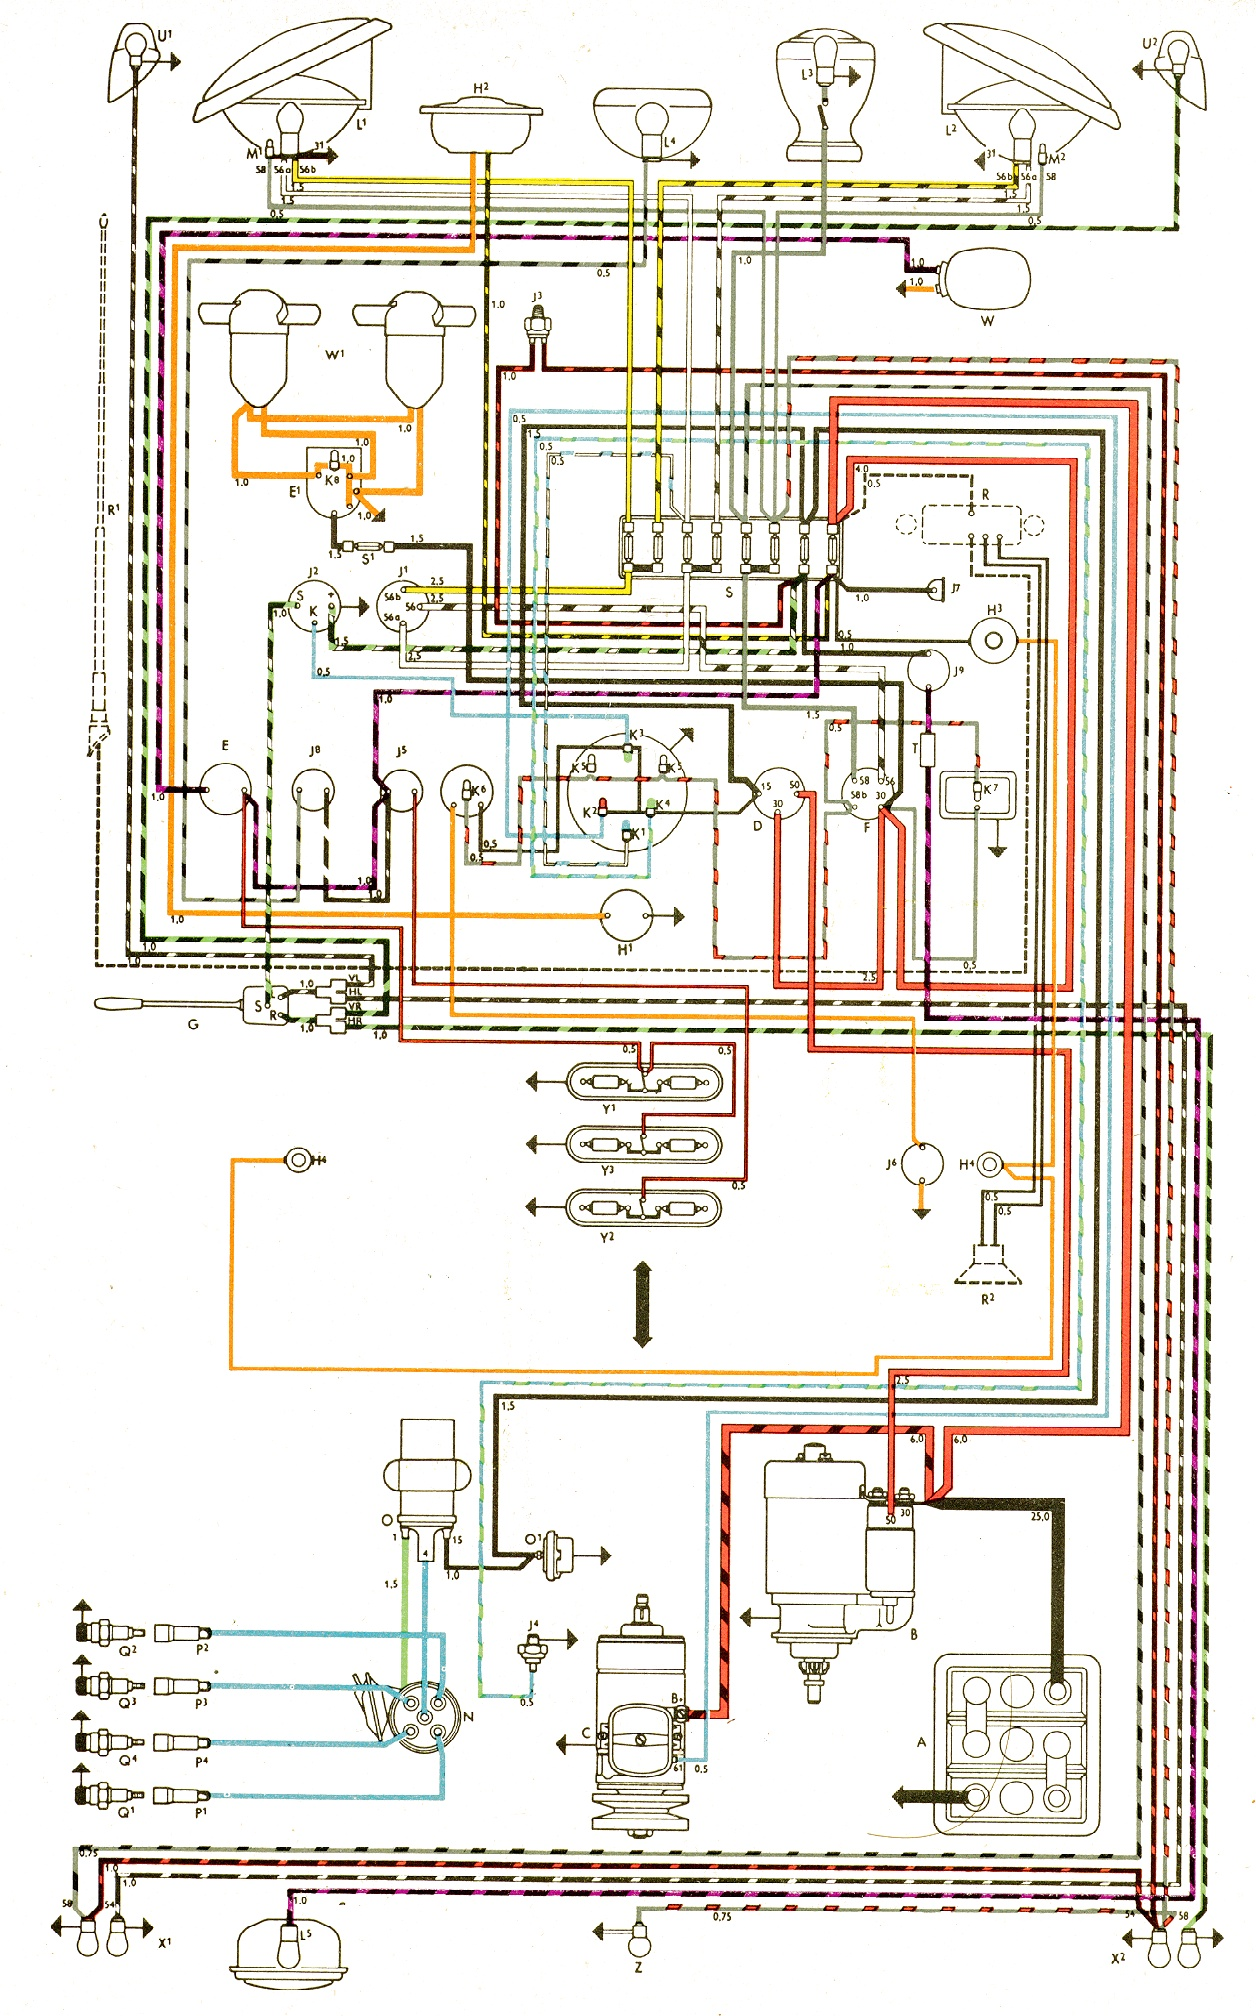 bus 62 vintagebus com vw bus (and other) wiring diagrams vw engine wiring diagram at webbmarketing.co